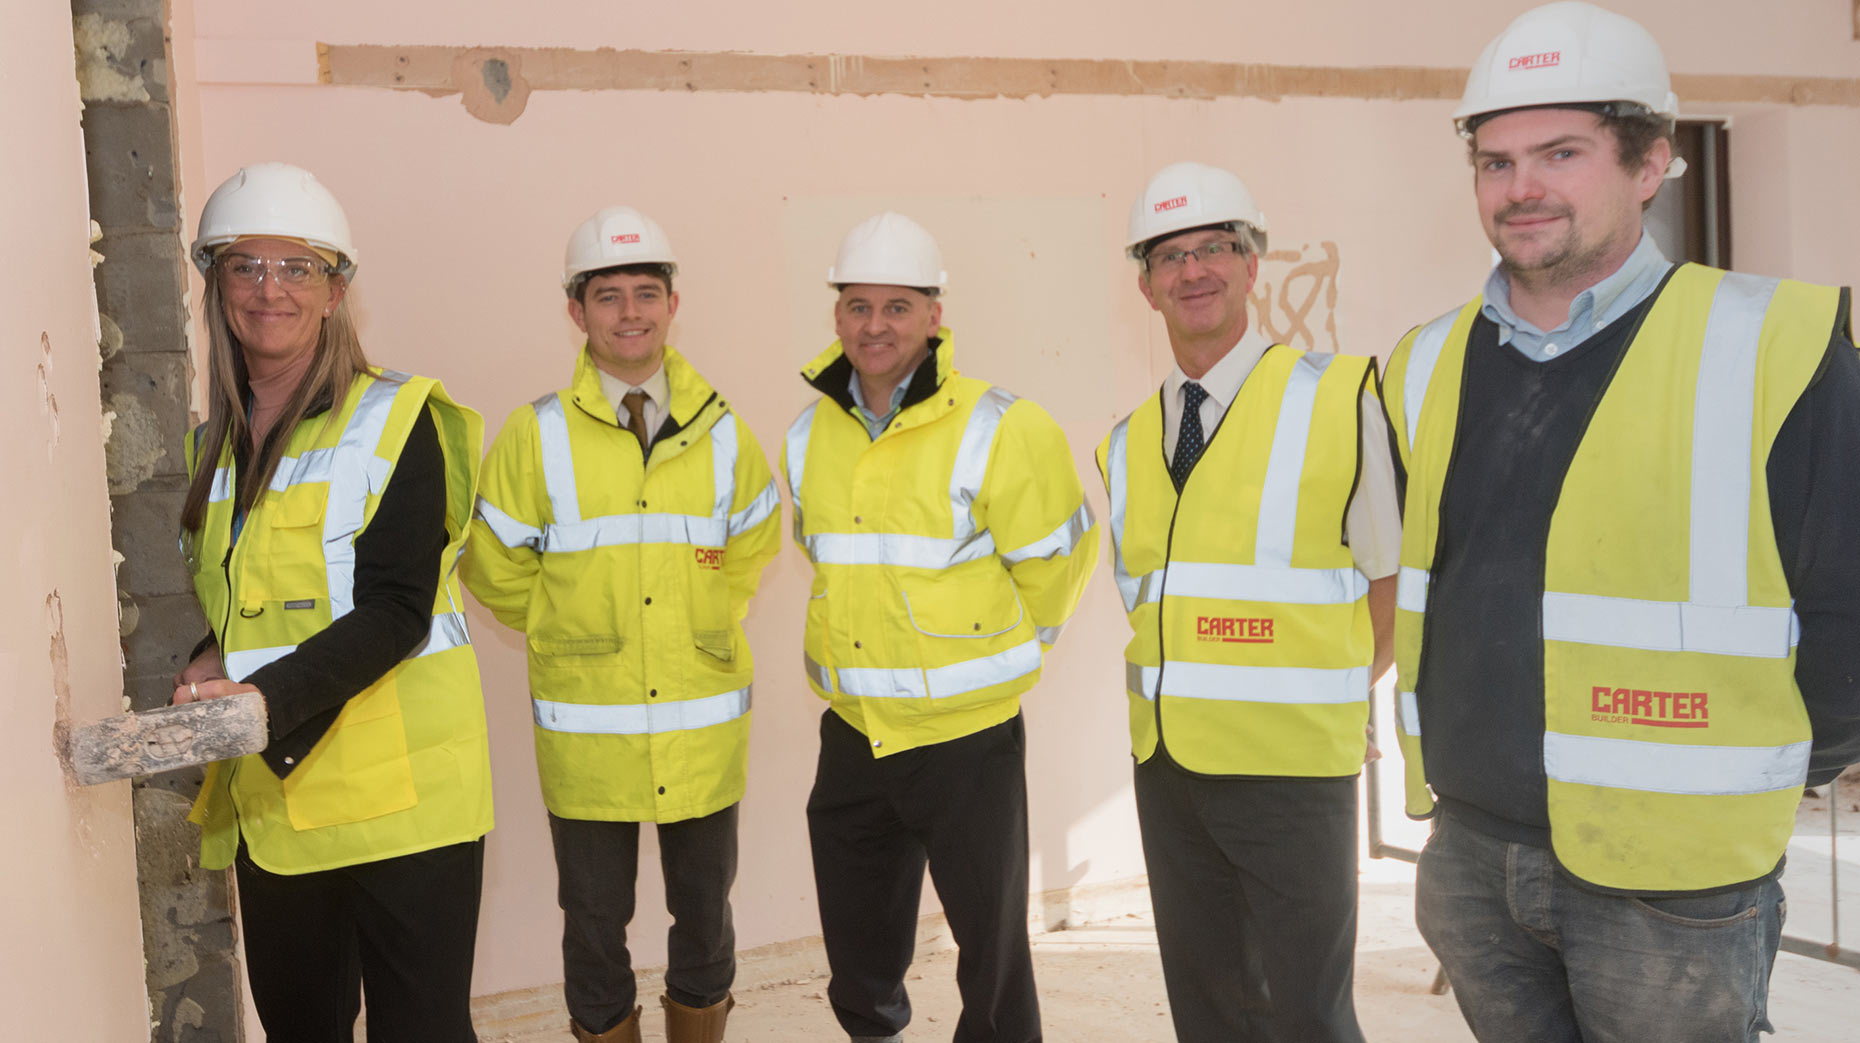 PICU project team with contractors R G Carter and Focus Consultants (L-R)- Tracy Colpitts, Ward Manager, Ryan Barnes Contract Manager for builders R G Carter, Focus Consultants senior project manager Andy White, Ian Jerams LPFT Director of Operations and site manager and R G Carter site manager Jon Loades)